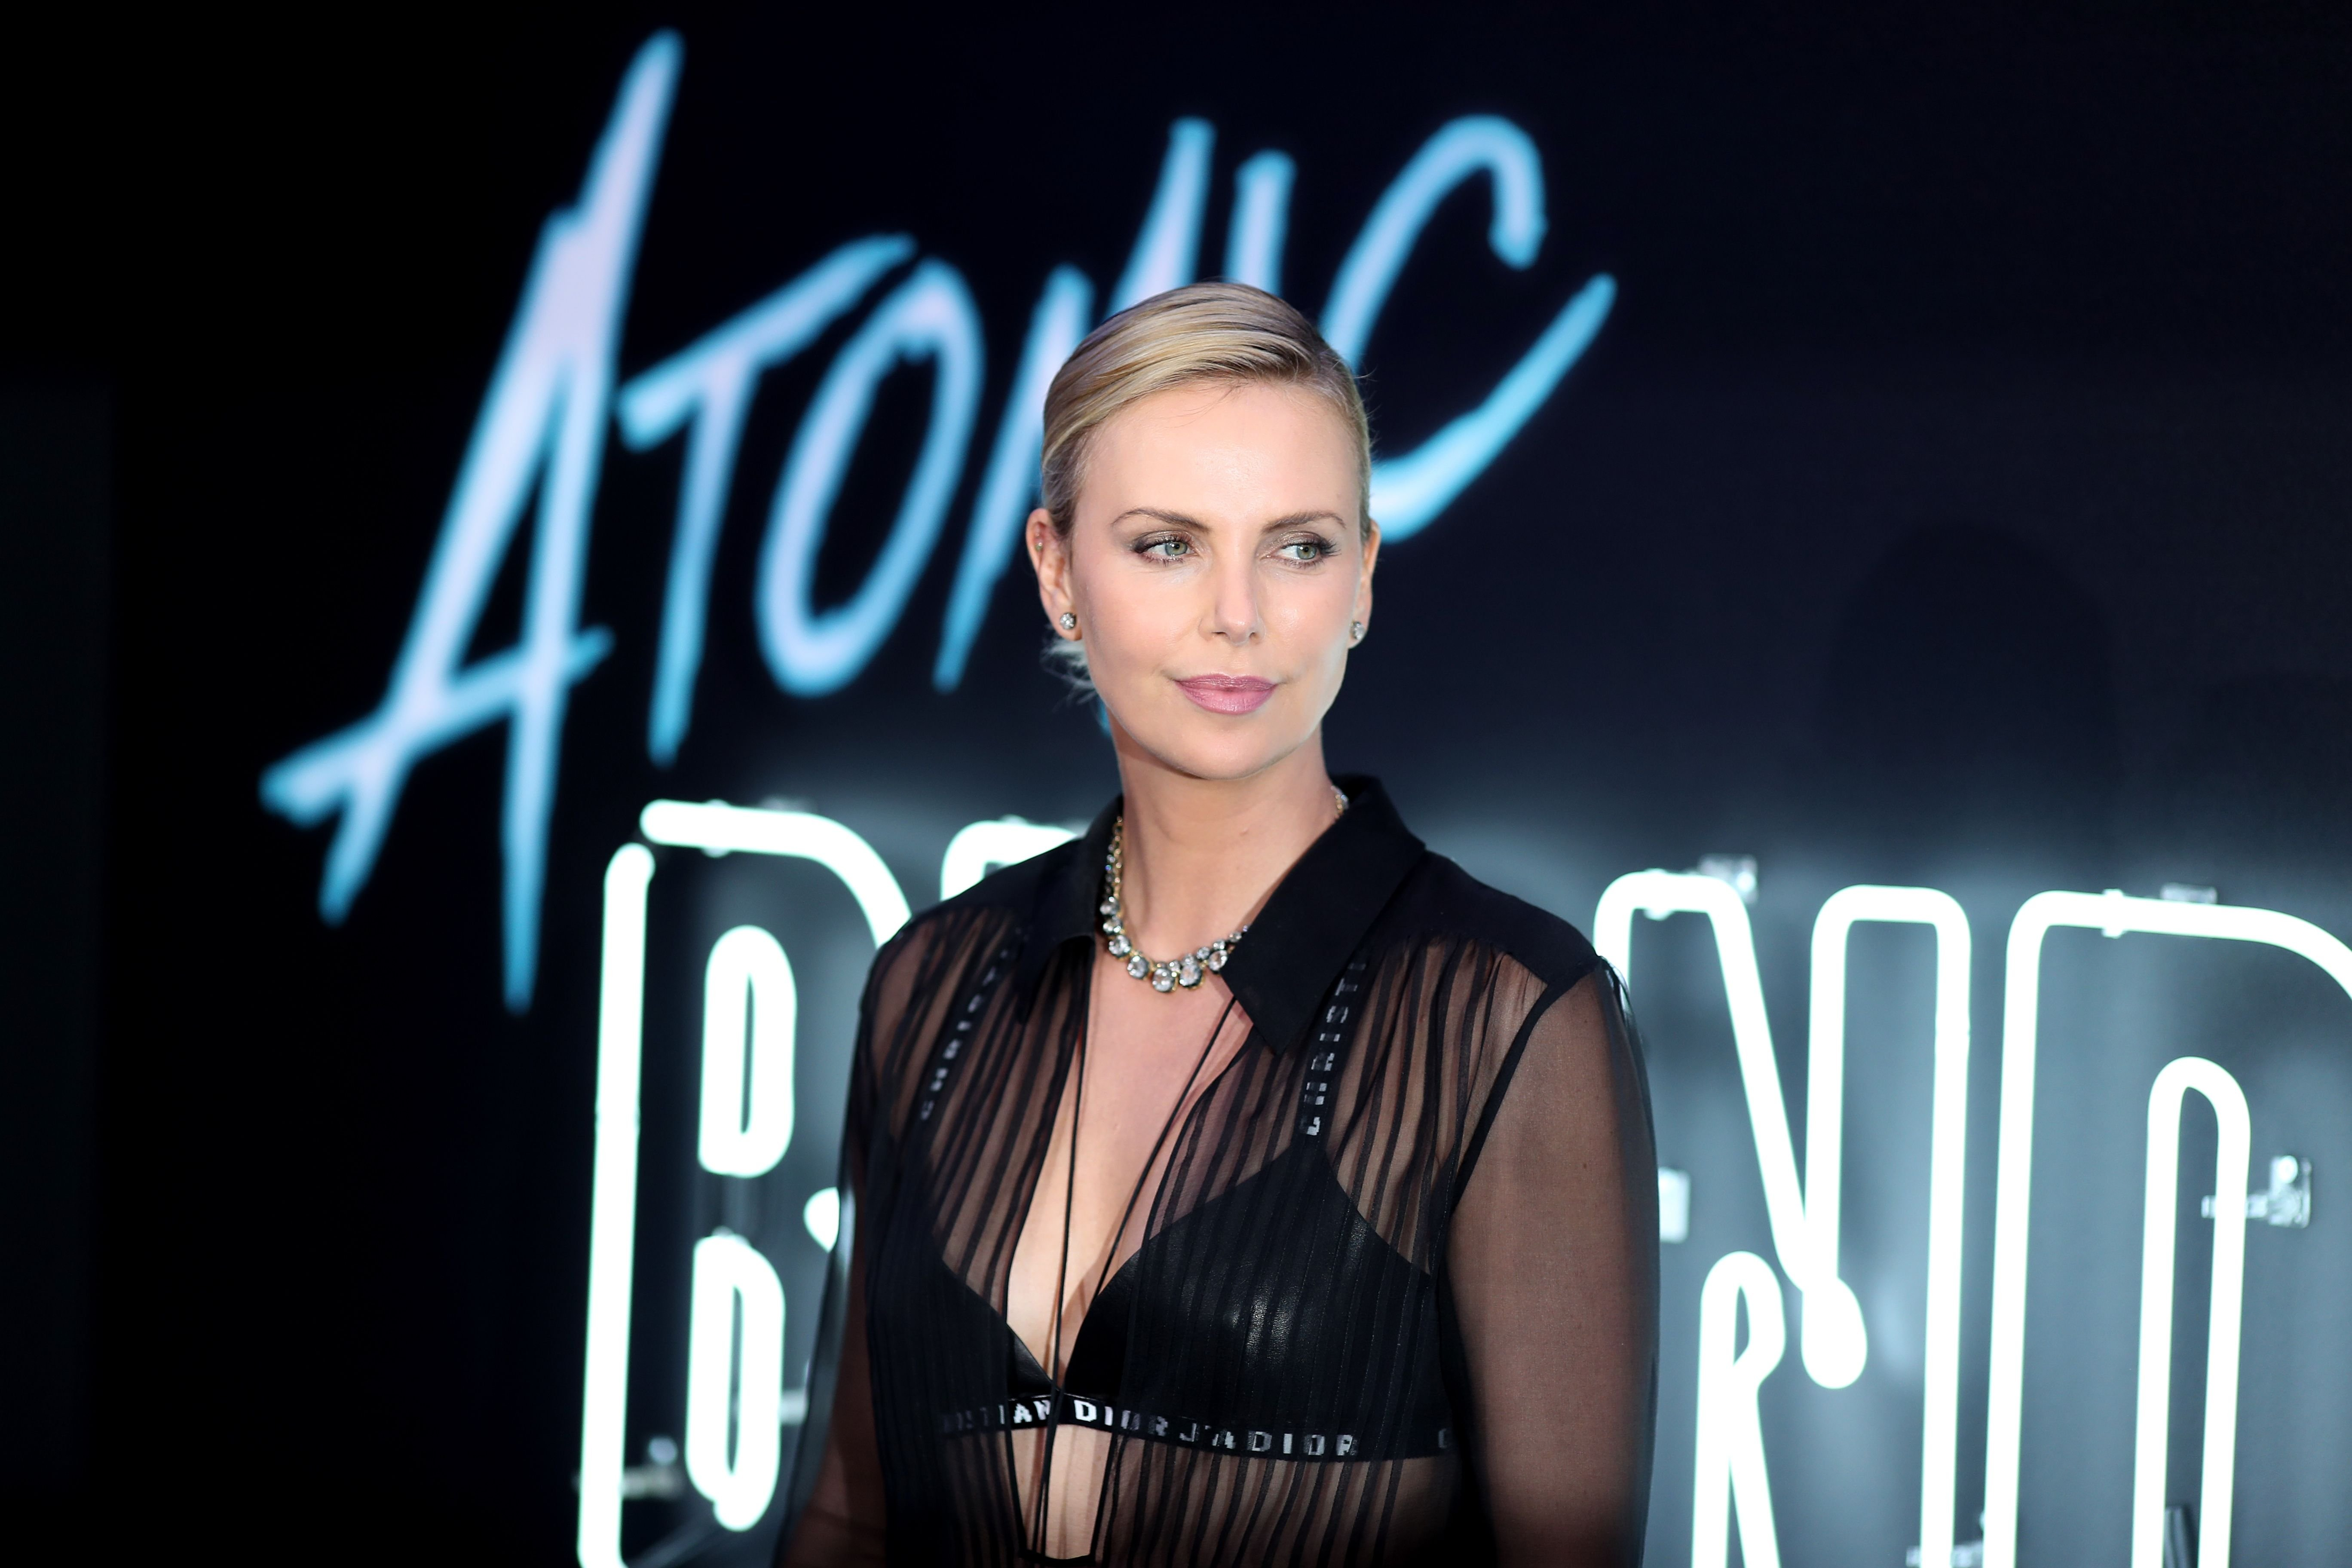 L'actrice Charlize Theron au The Theatre at Ace Hotel le 24 juillet 2017 à Los Angeles, Californie. | Photo : Getty Images